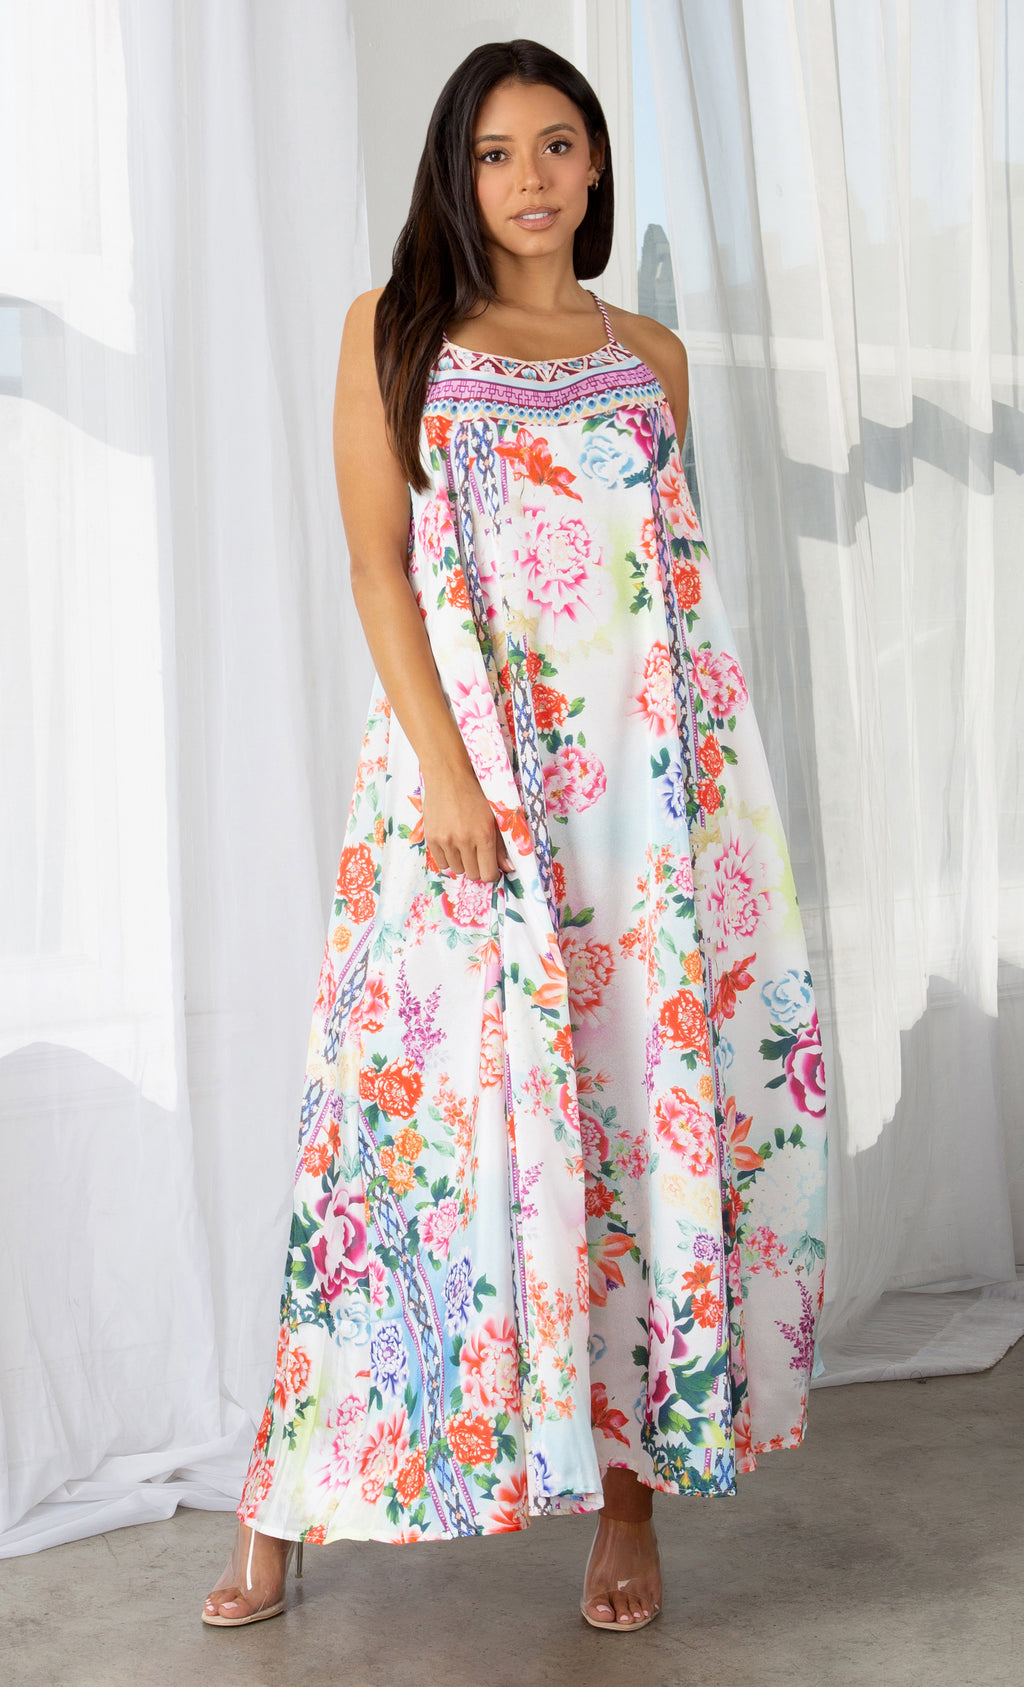 How Sweet It Is Multicolor Floral Pattern Sleeveless Spaghetti Strap Square Neck Casual Maxi Dress